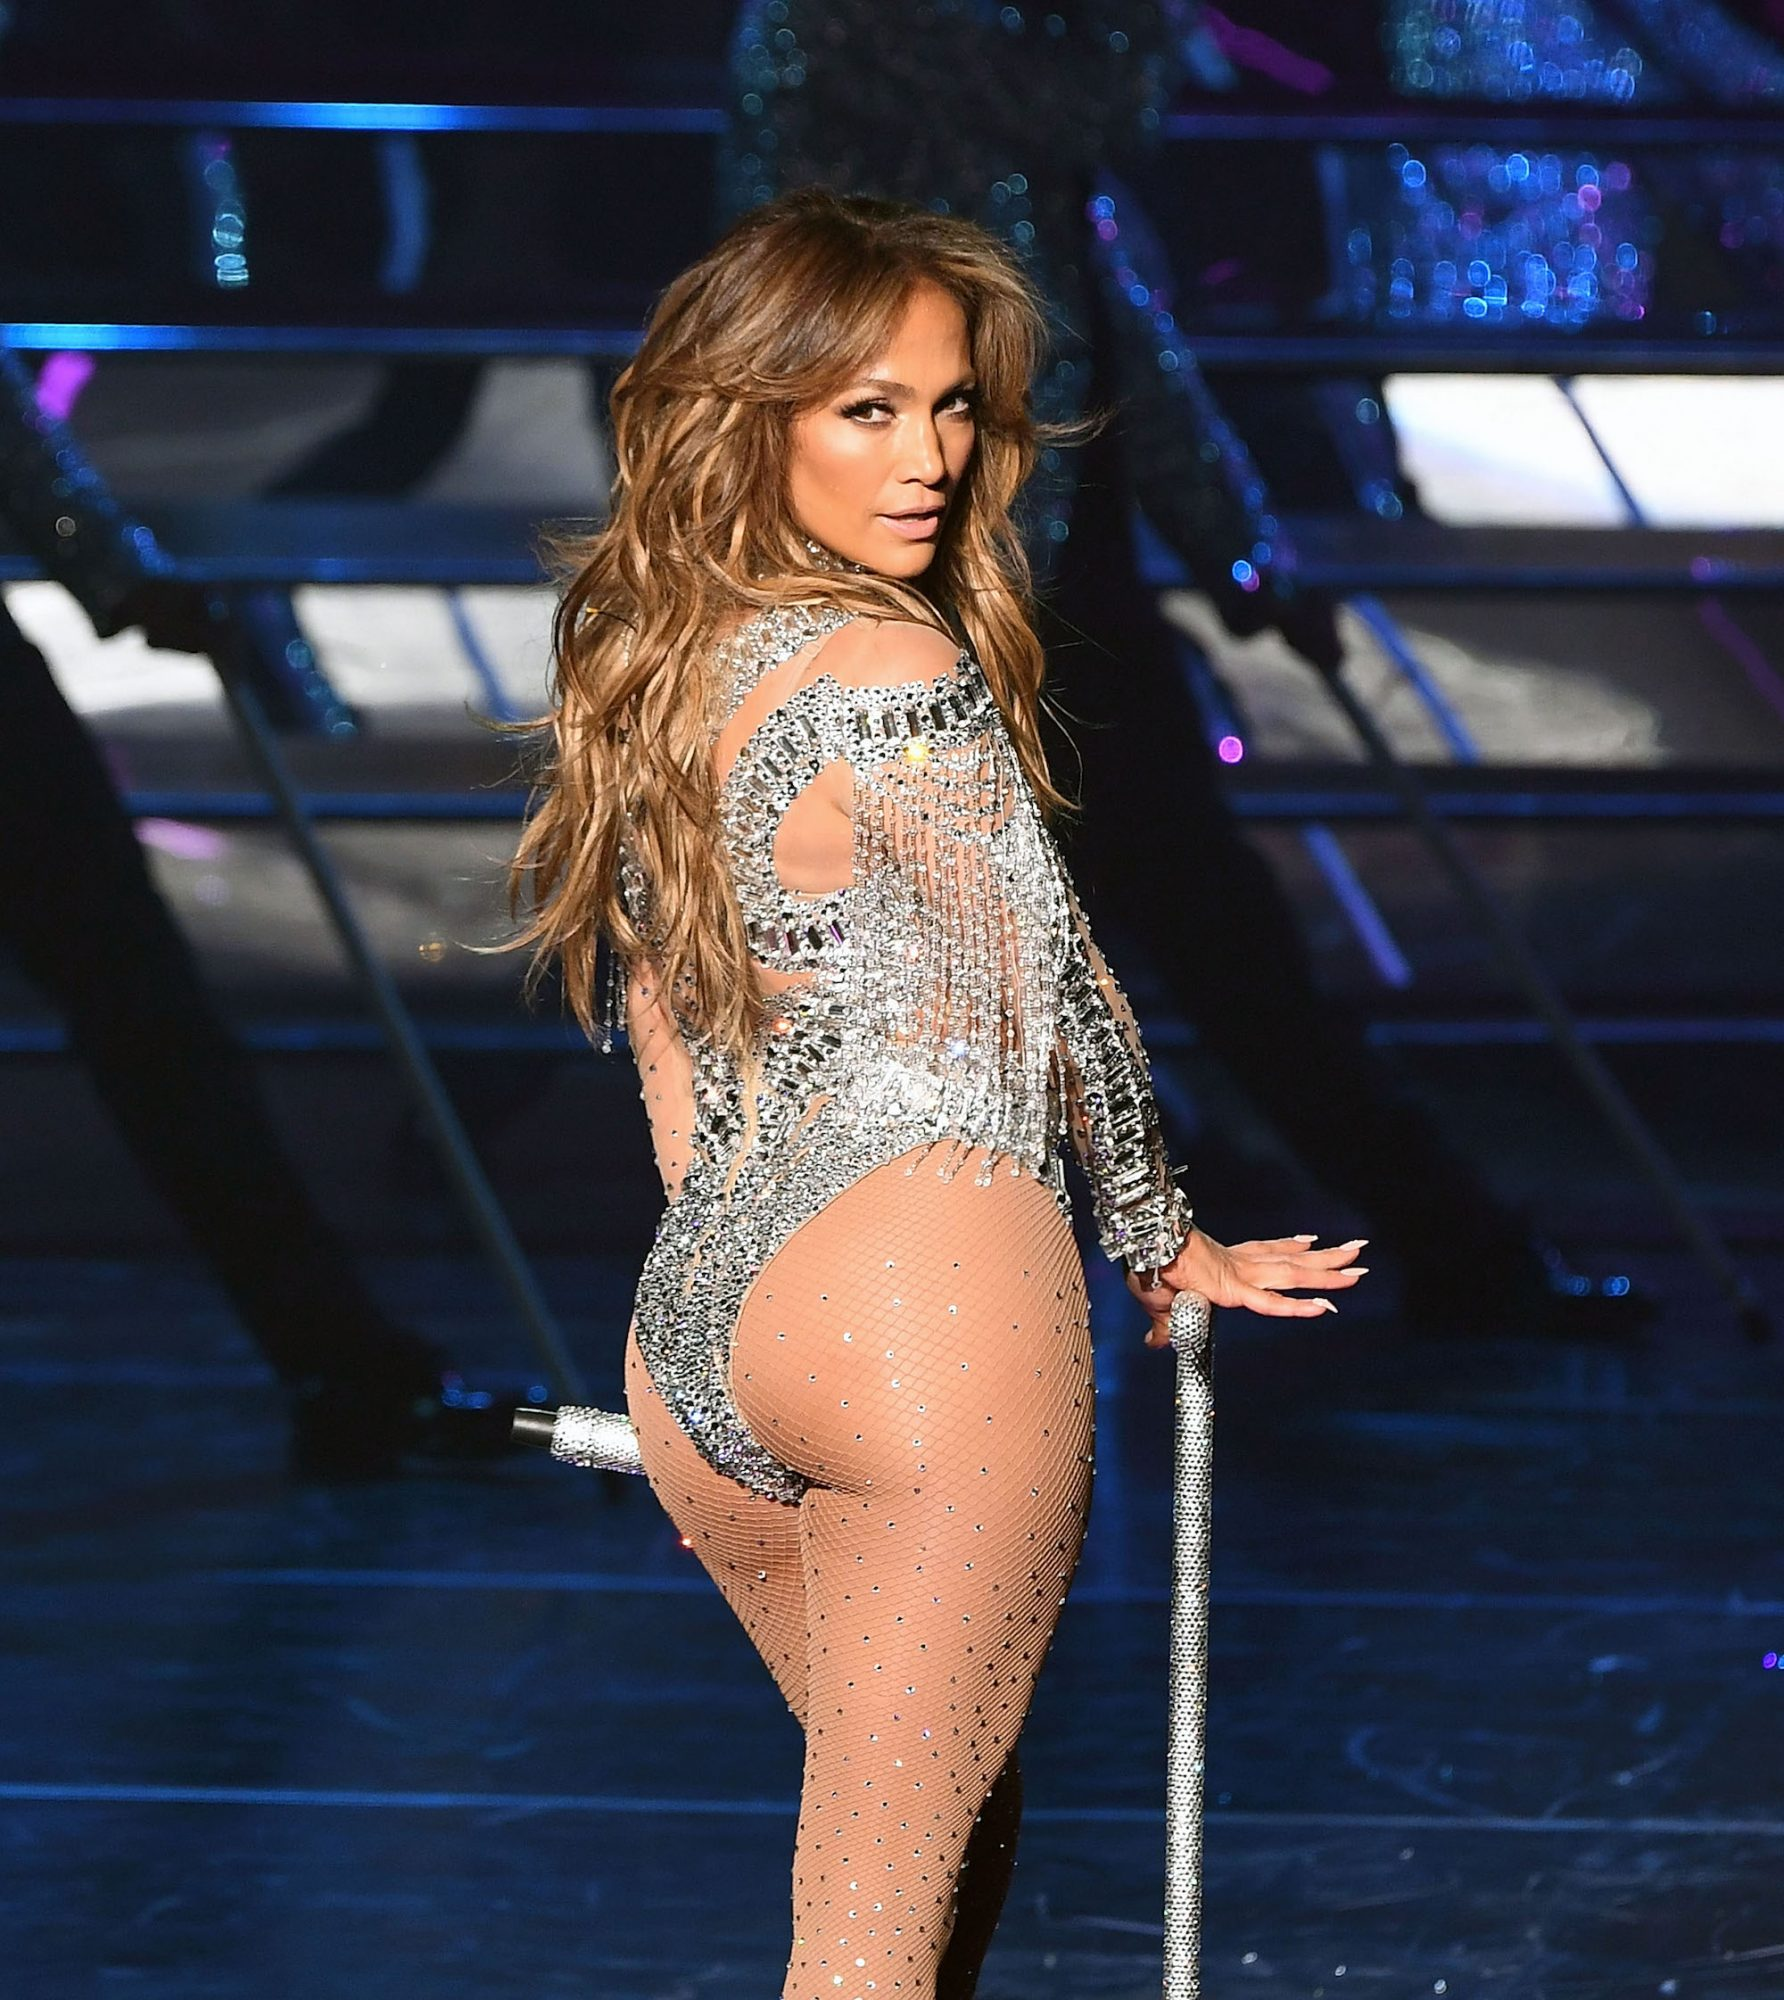 J.Lo Closed Out Her Vegas Residency by Twerking in a Liquid Silver Bodysuit